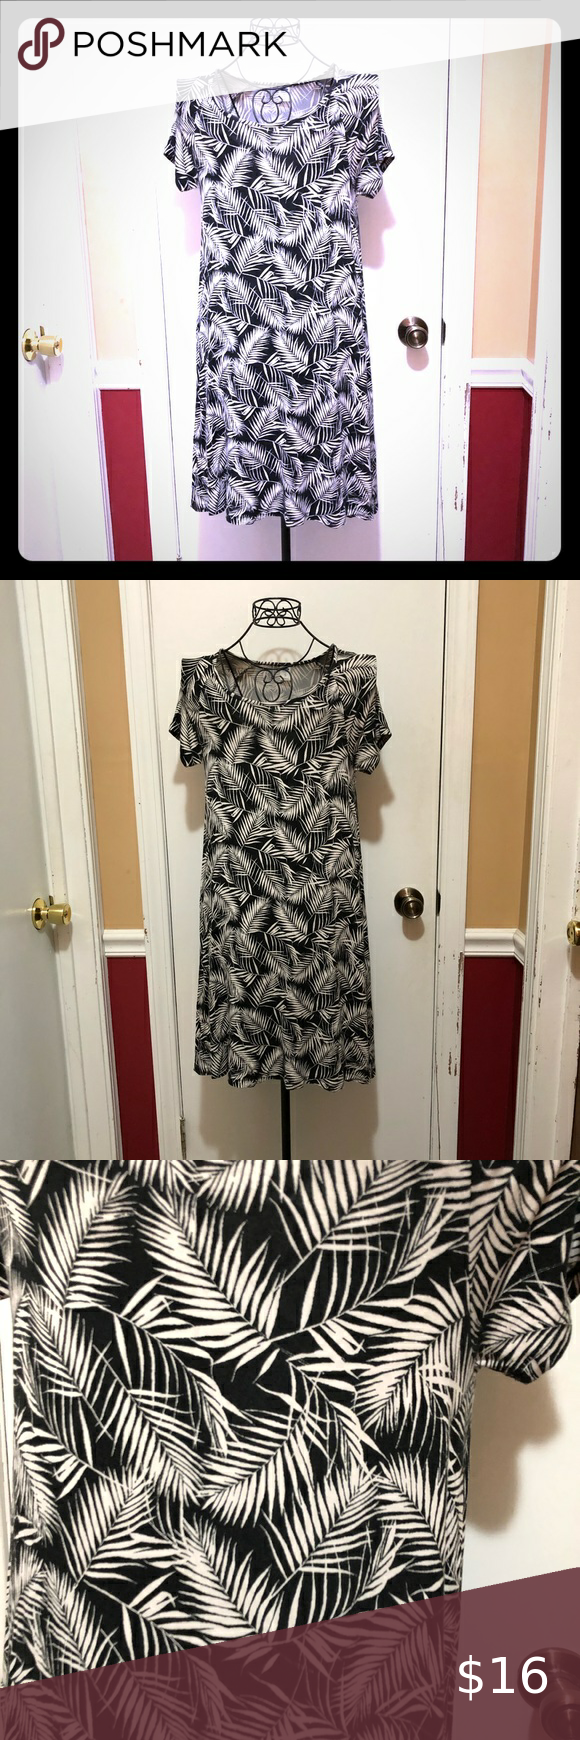 Old Navy Black White Leaves Dress In Excellent Preowned Condition No Issues Soft Material Old Navy Dresses In 2020 Black And White Leaves Navy Midi Dress White Leaf